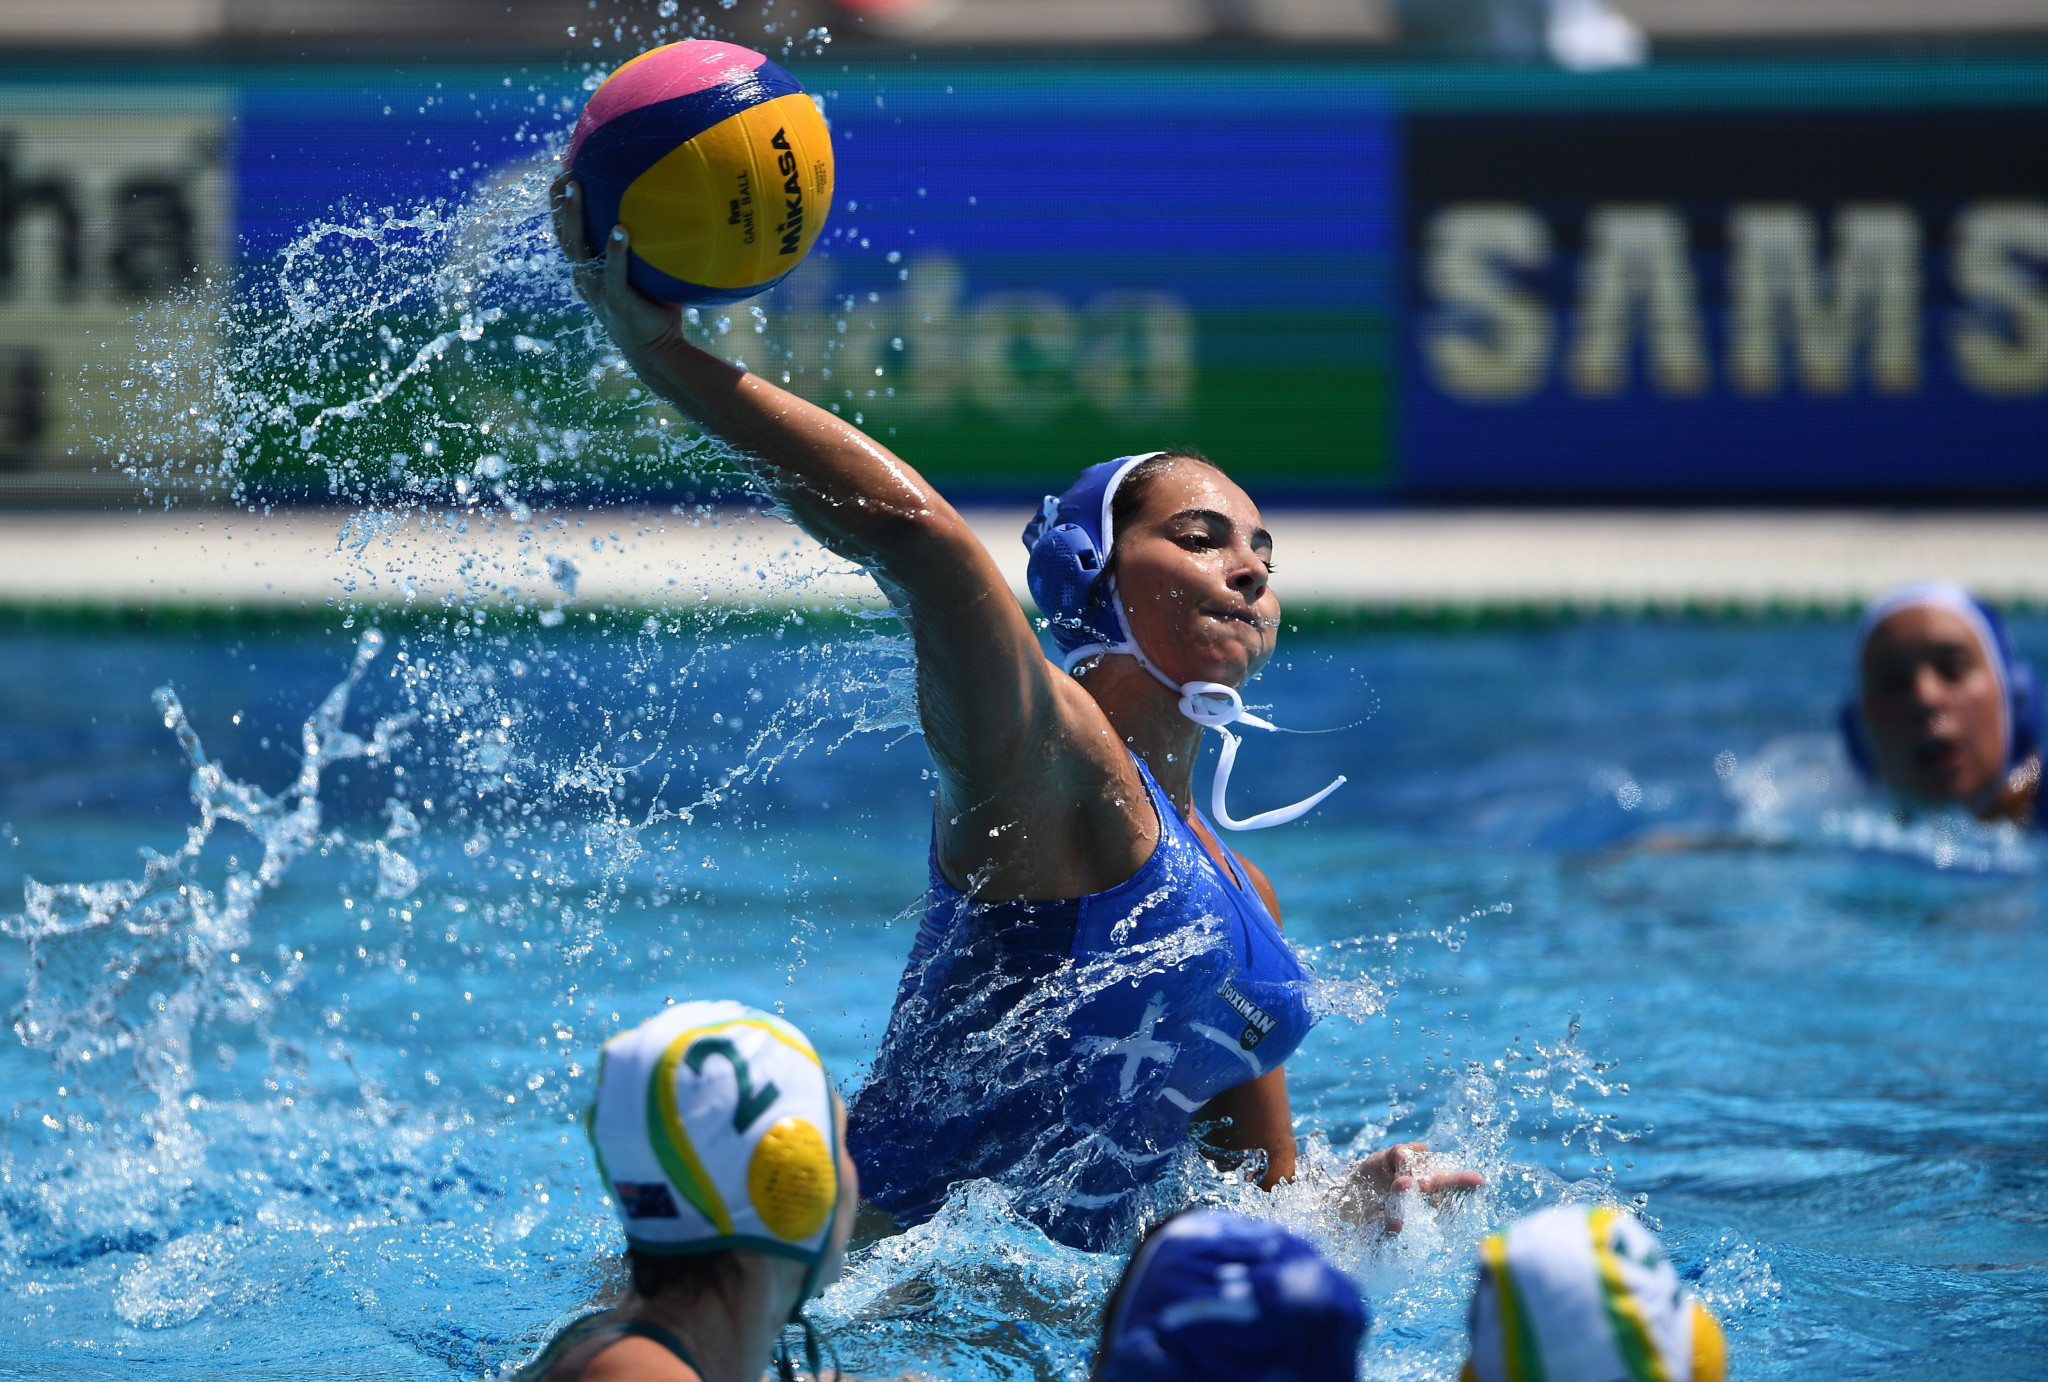 Greece beat The Netherlands in thrilling qualifier for Water Polo World League